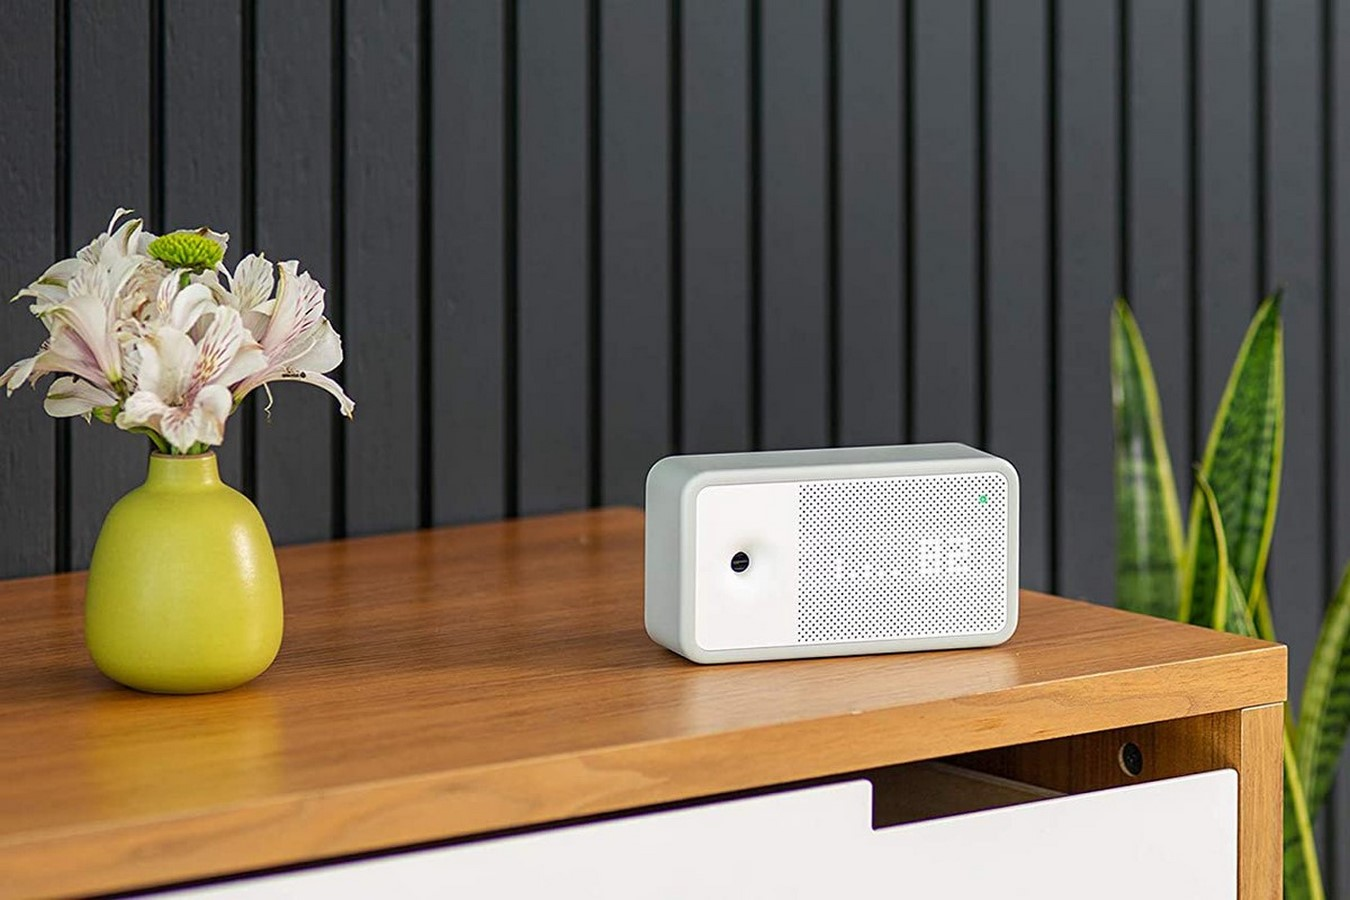 10 smart gadgets to help update your home - Sheet5